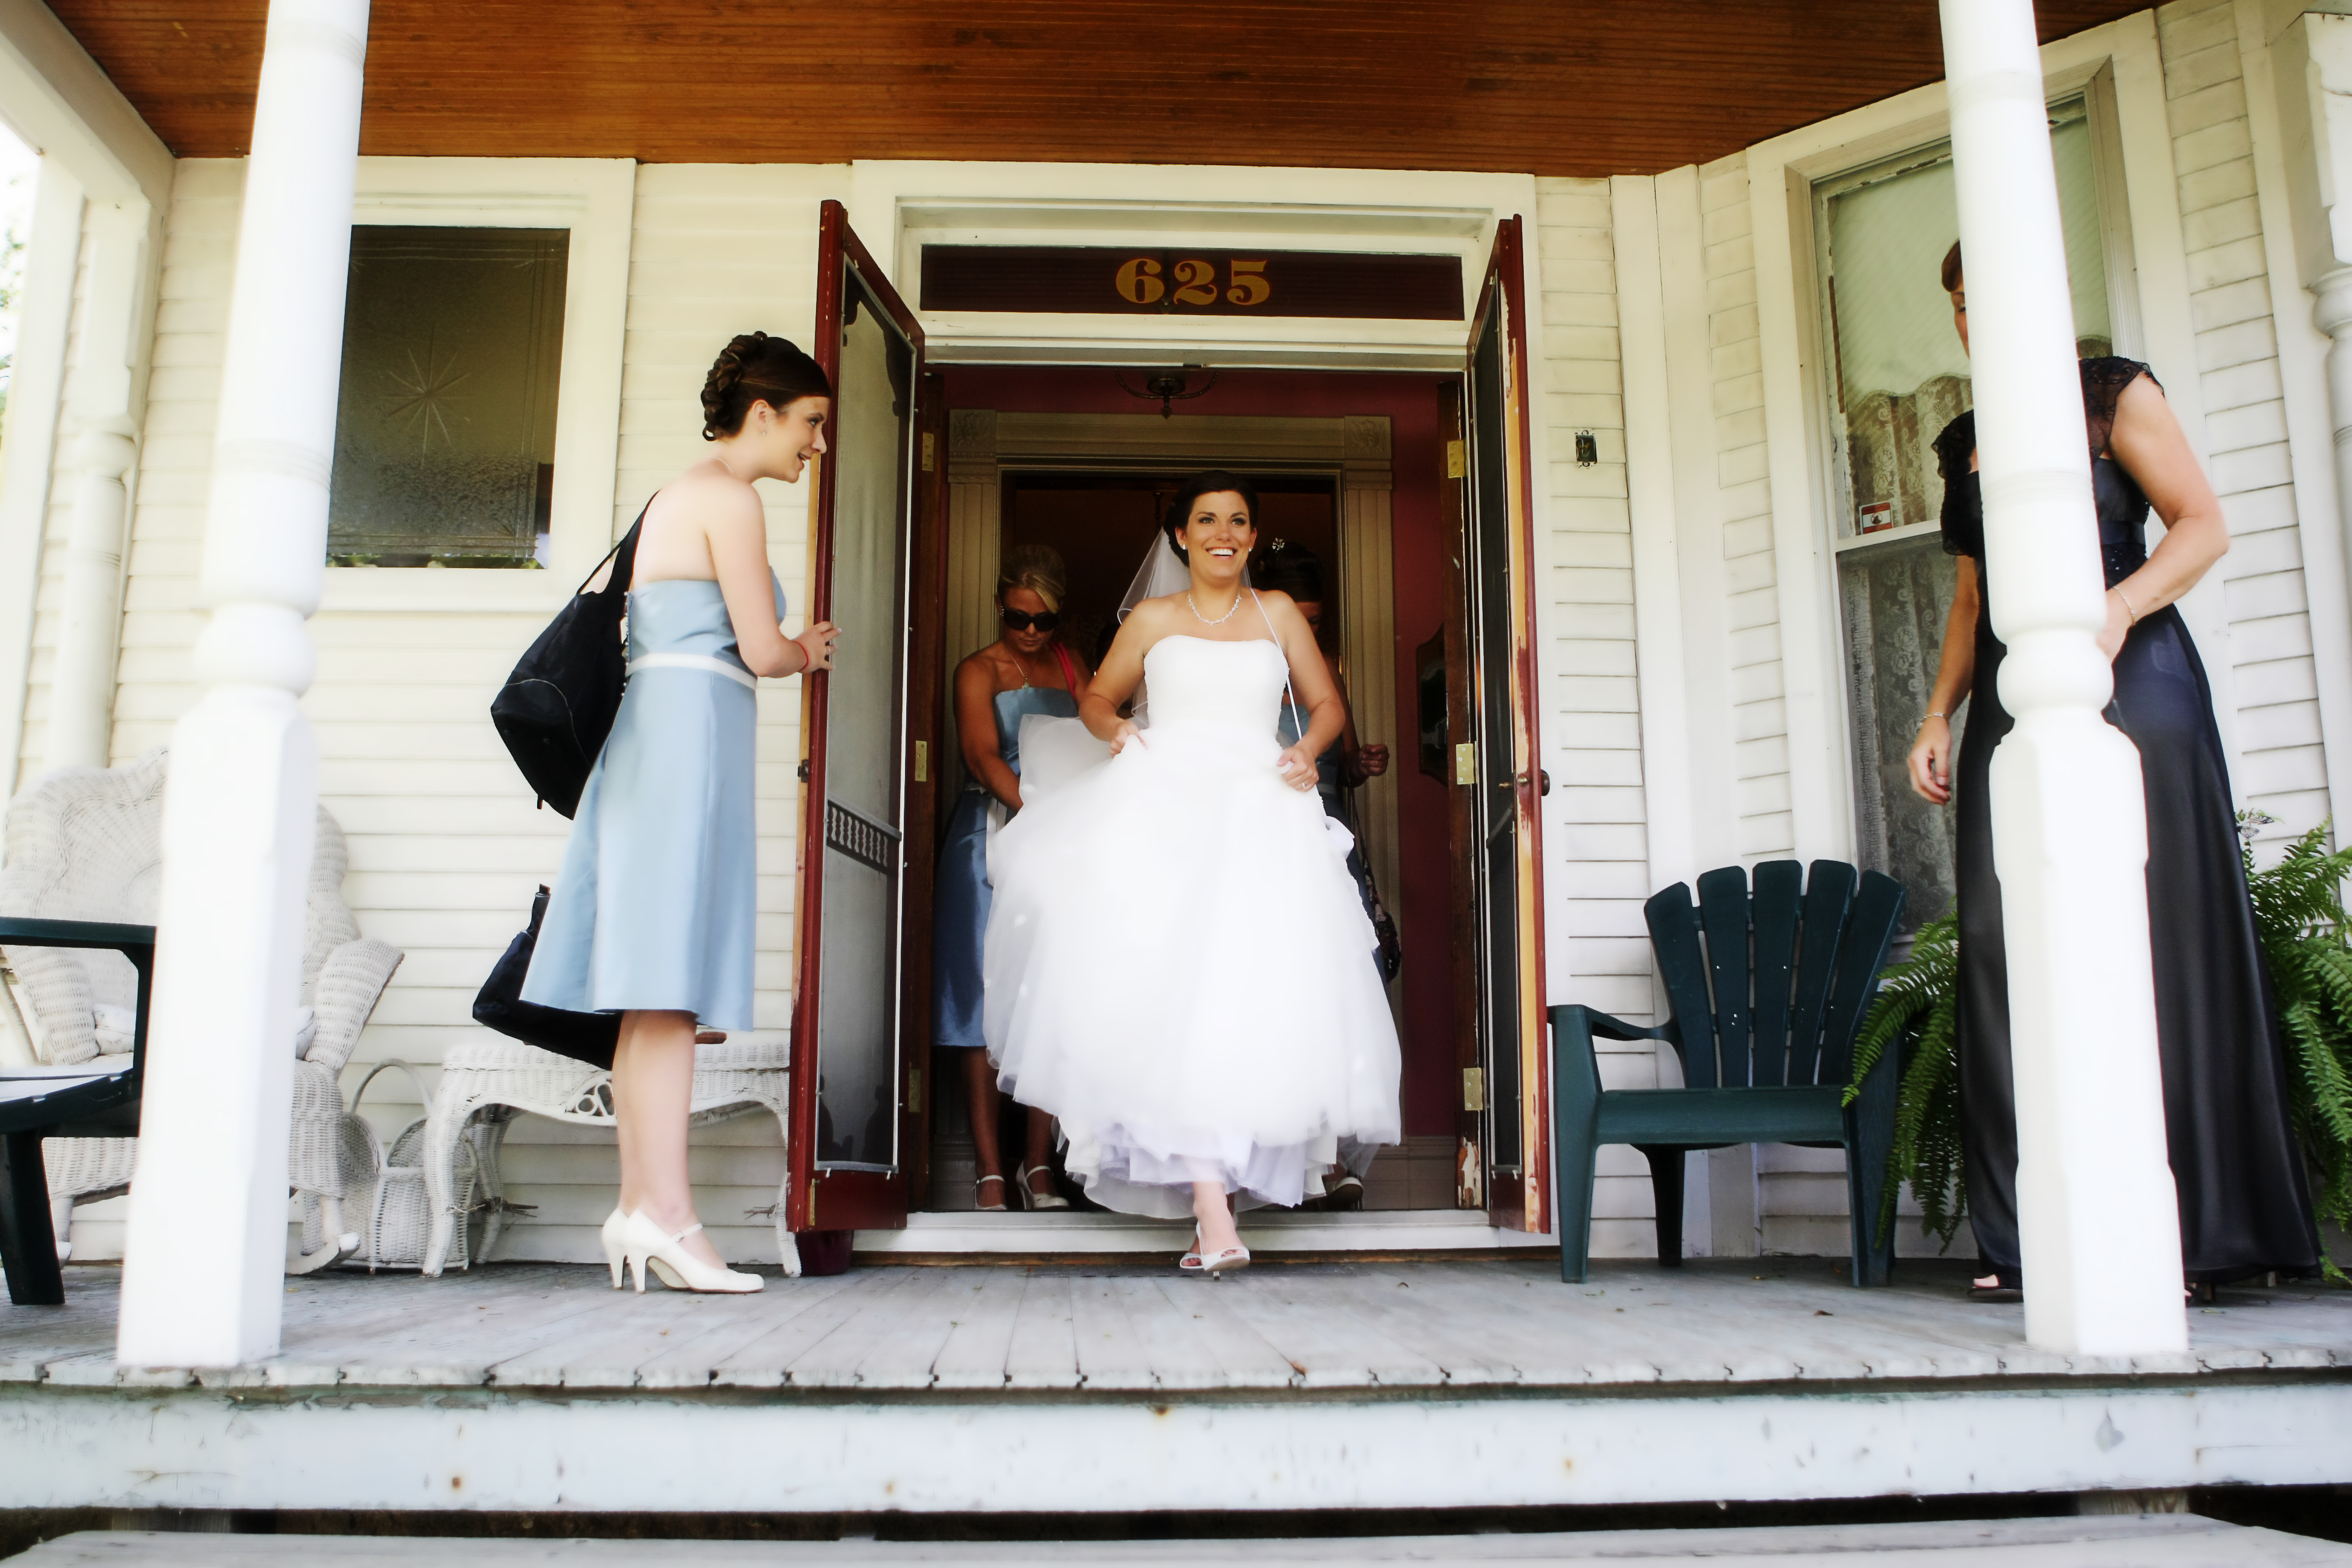 Bride, Wedding, Getting, Ready, Anticipation, Ryan timm photography